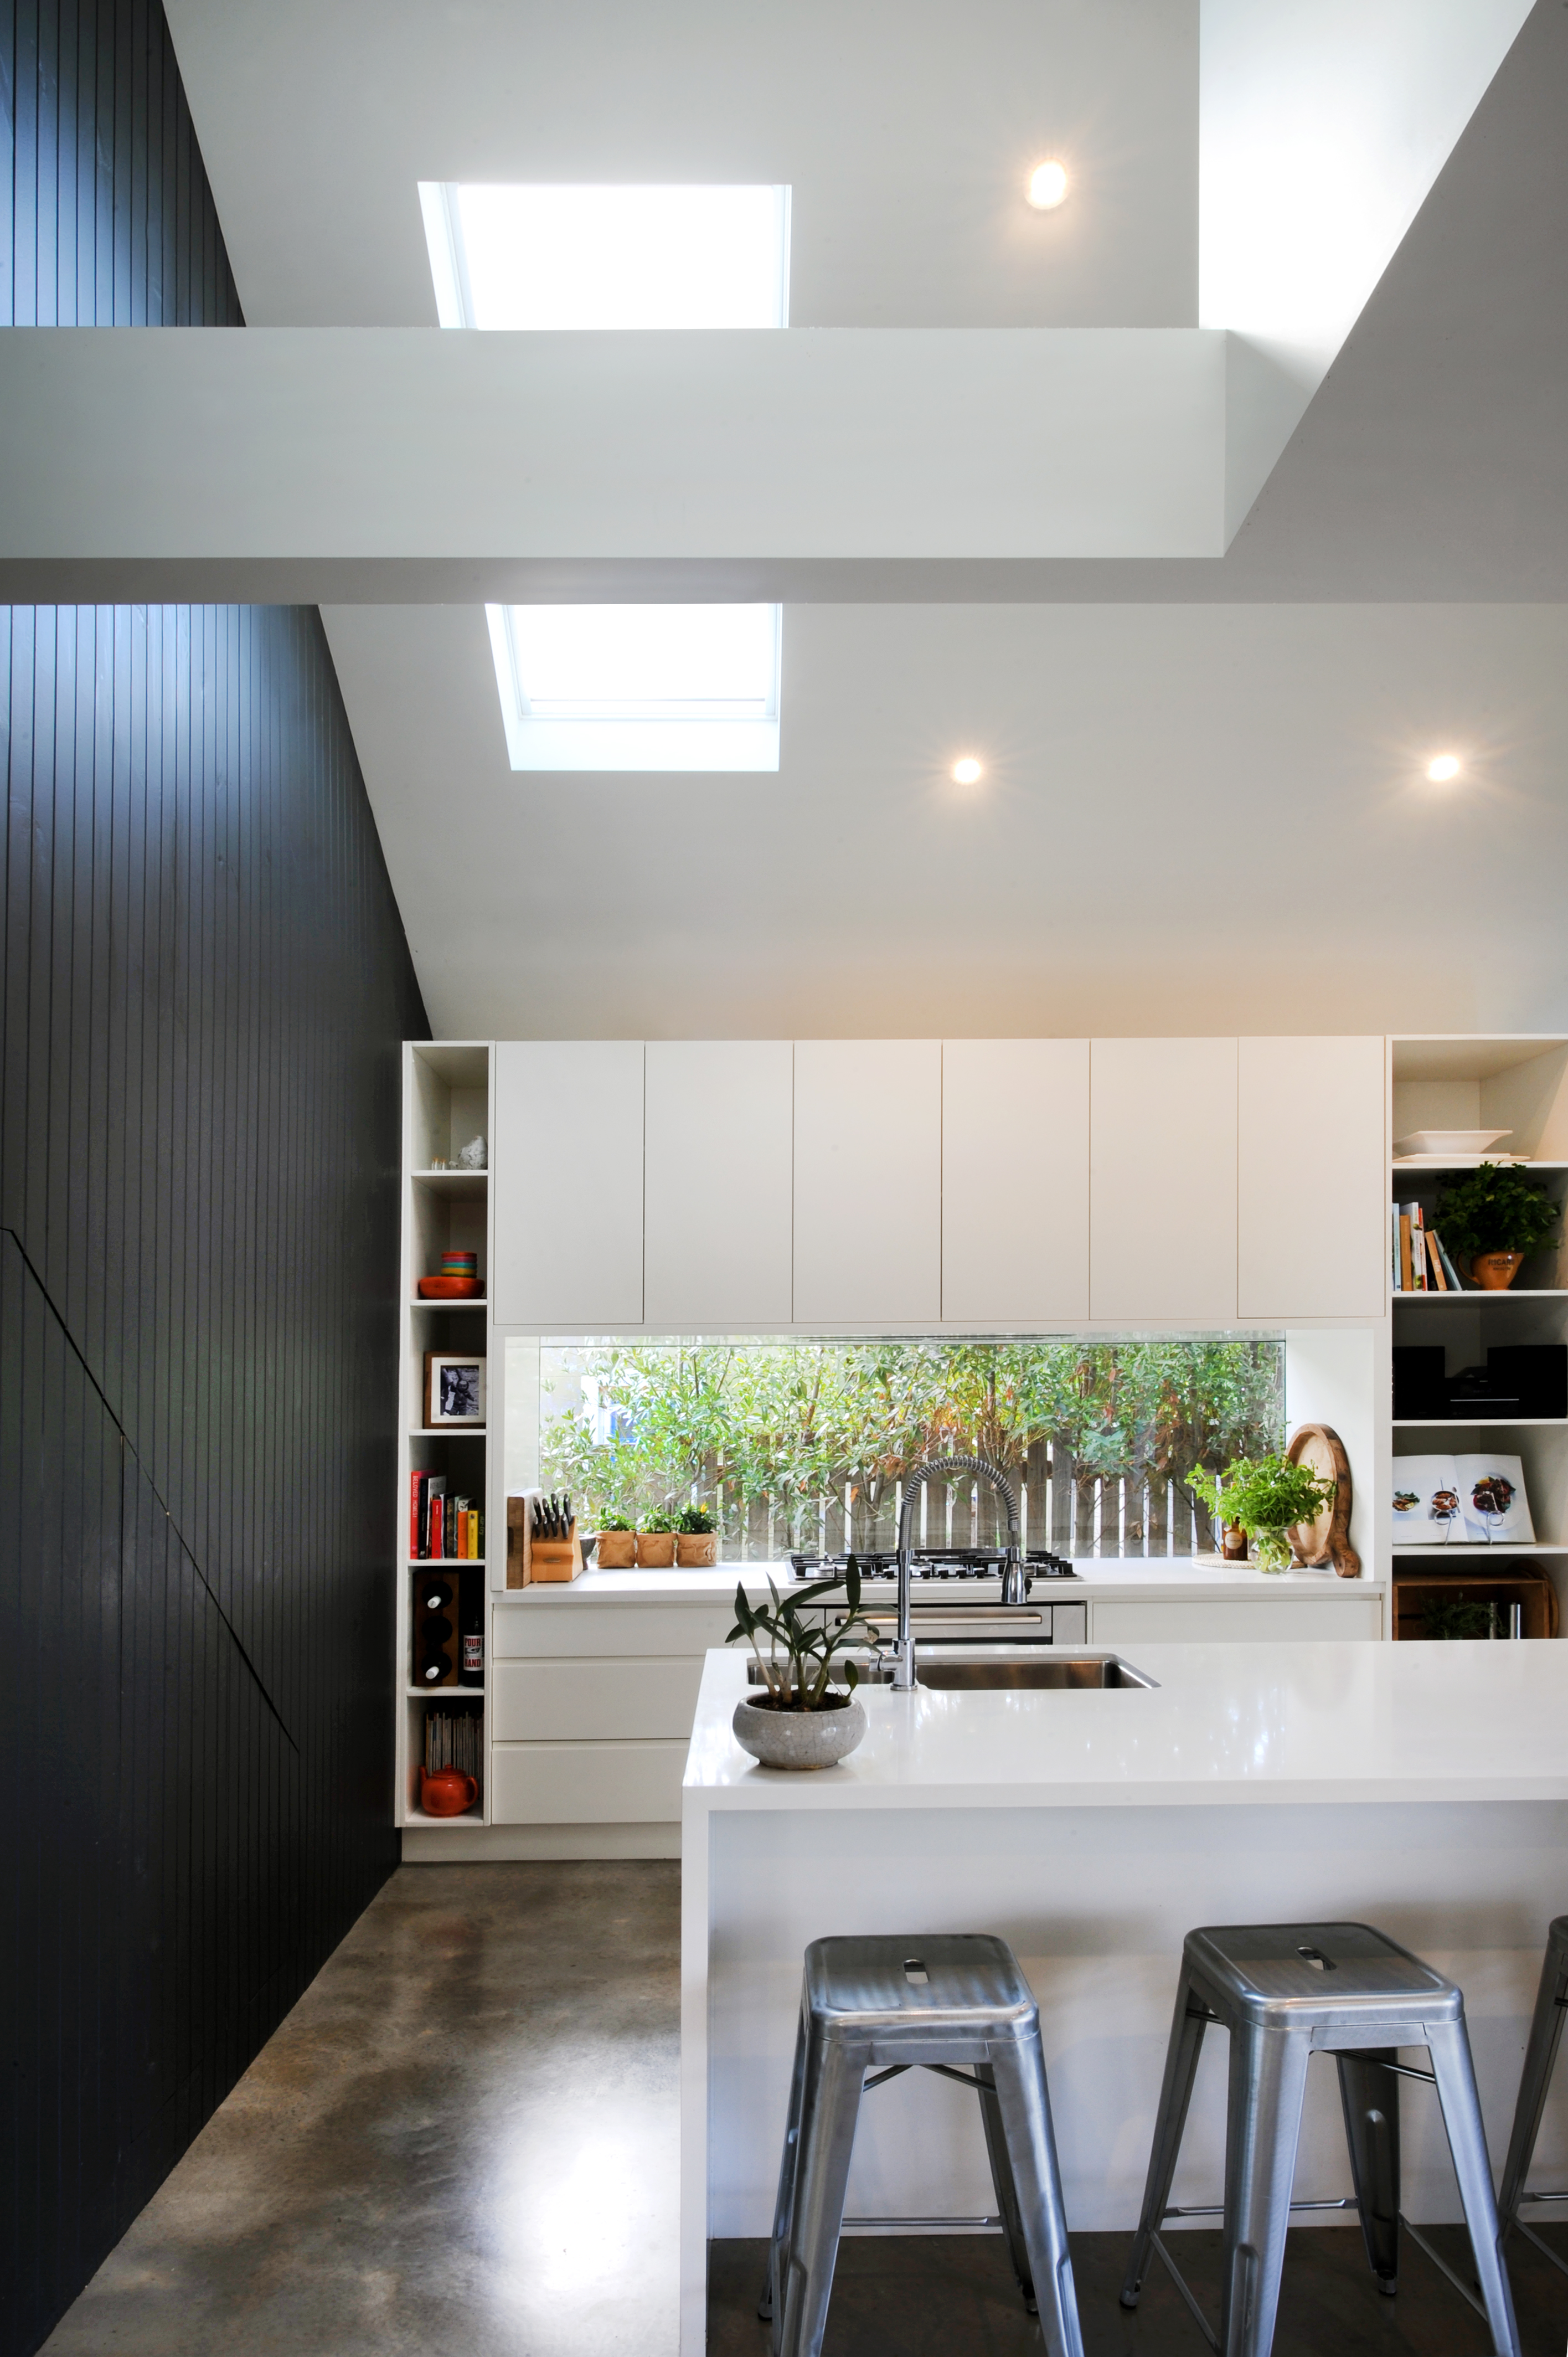 Cameron Anderson Architects – Gladstone street residence